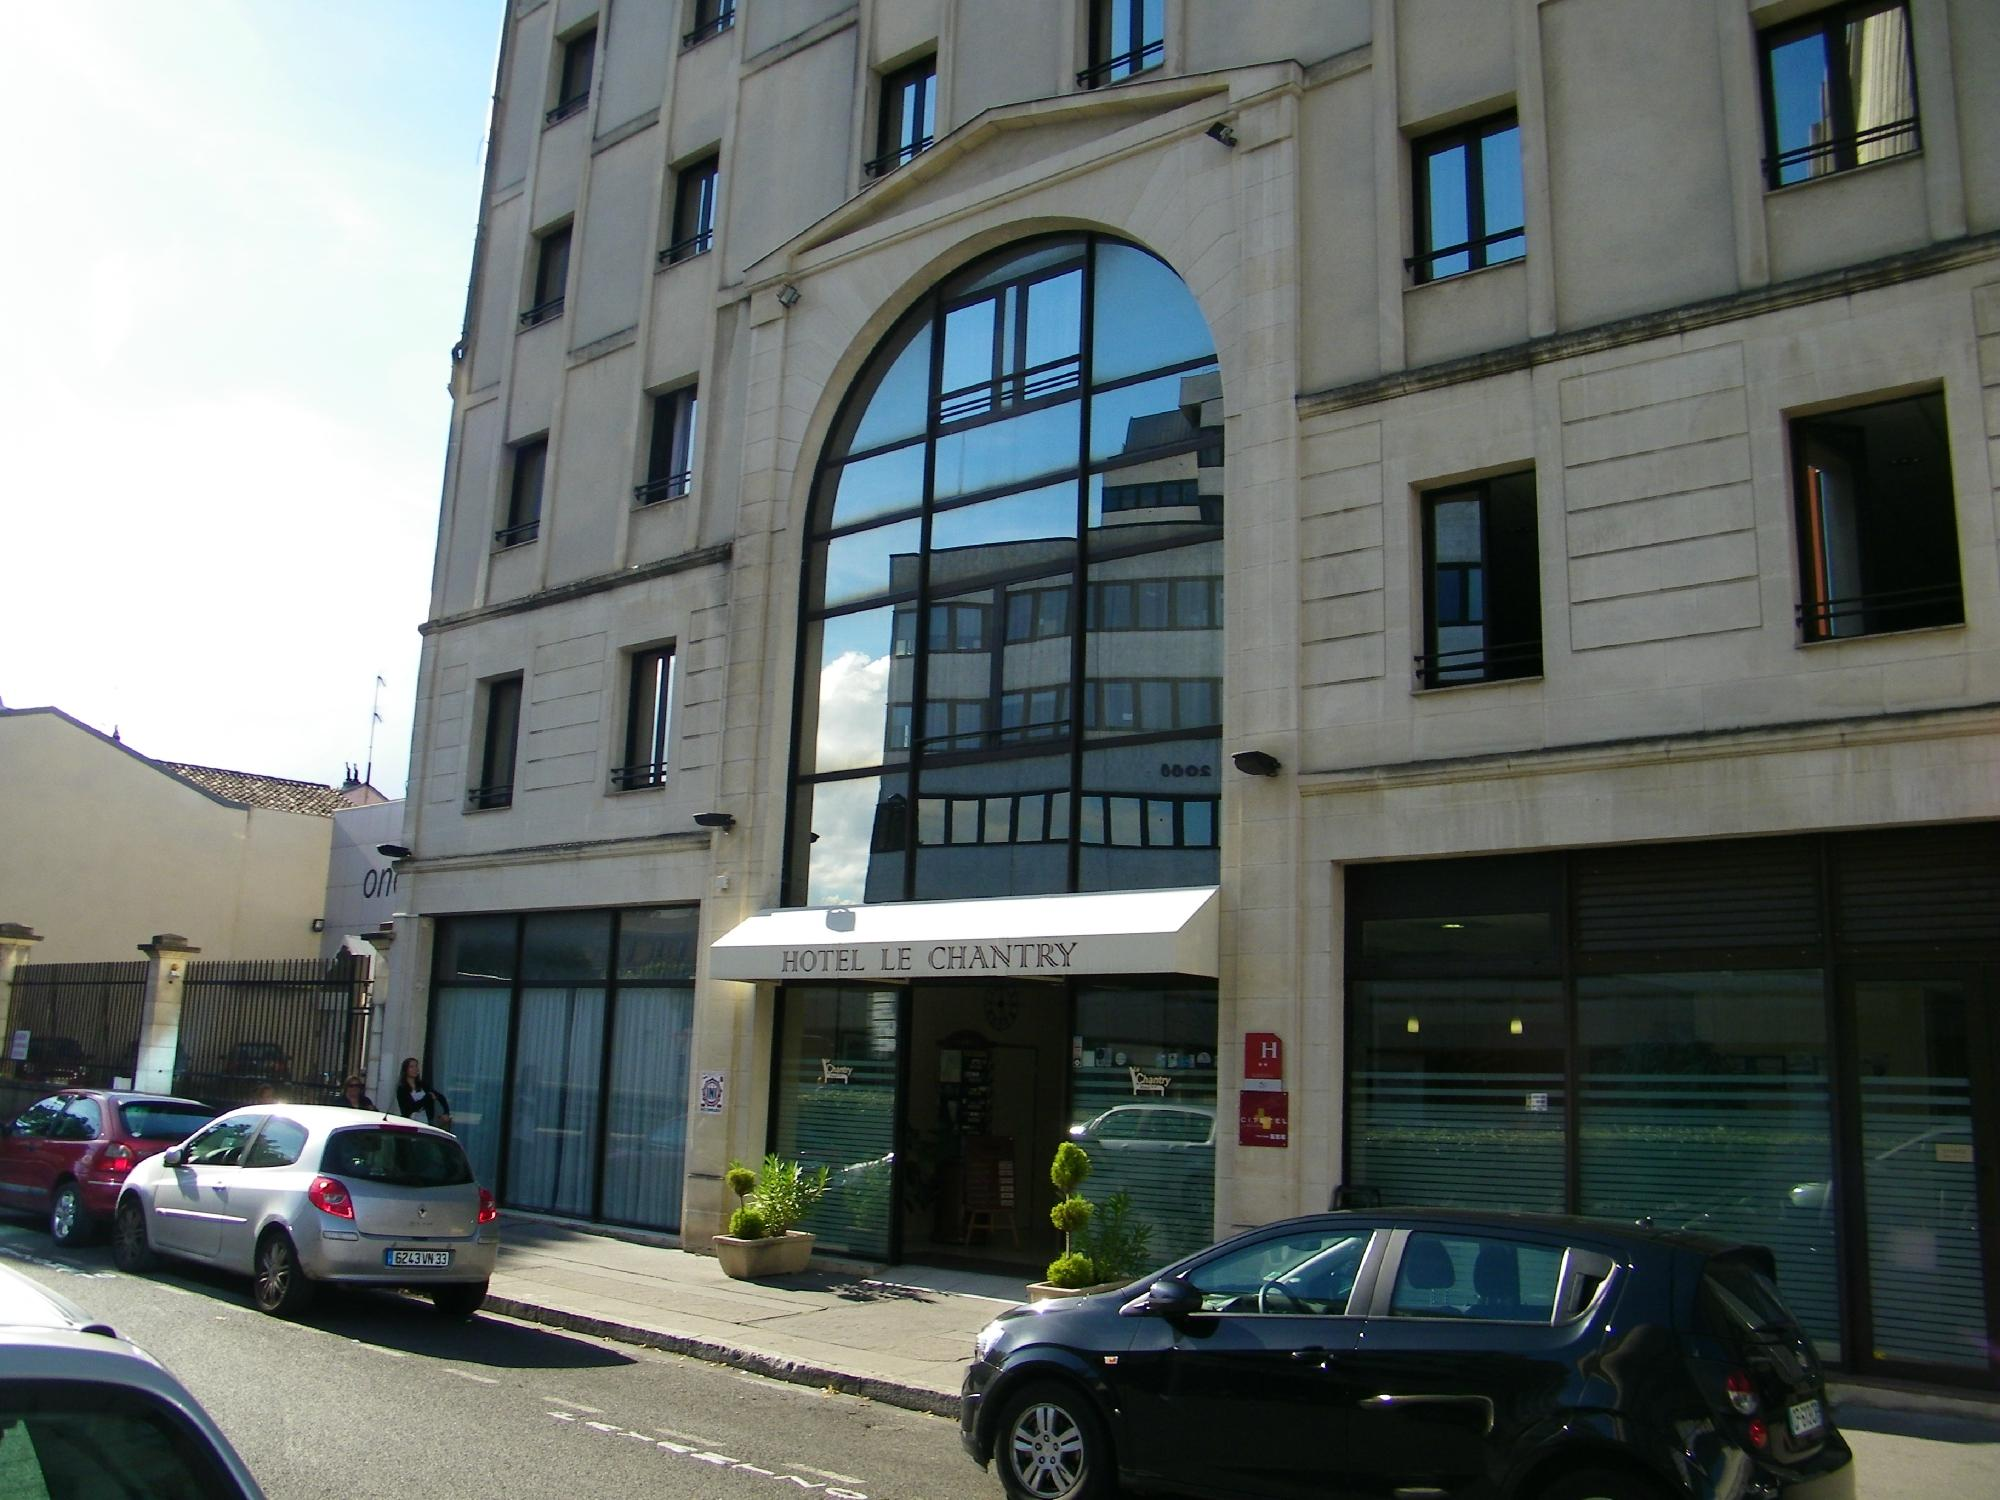 Hotel Le Chantry